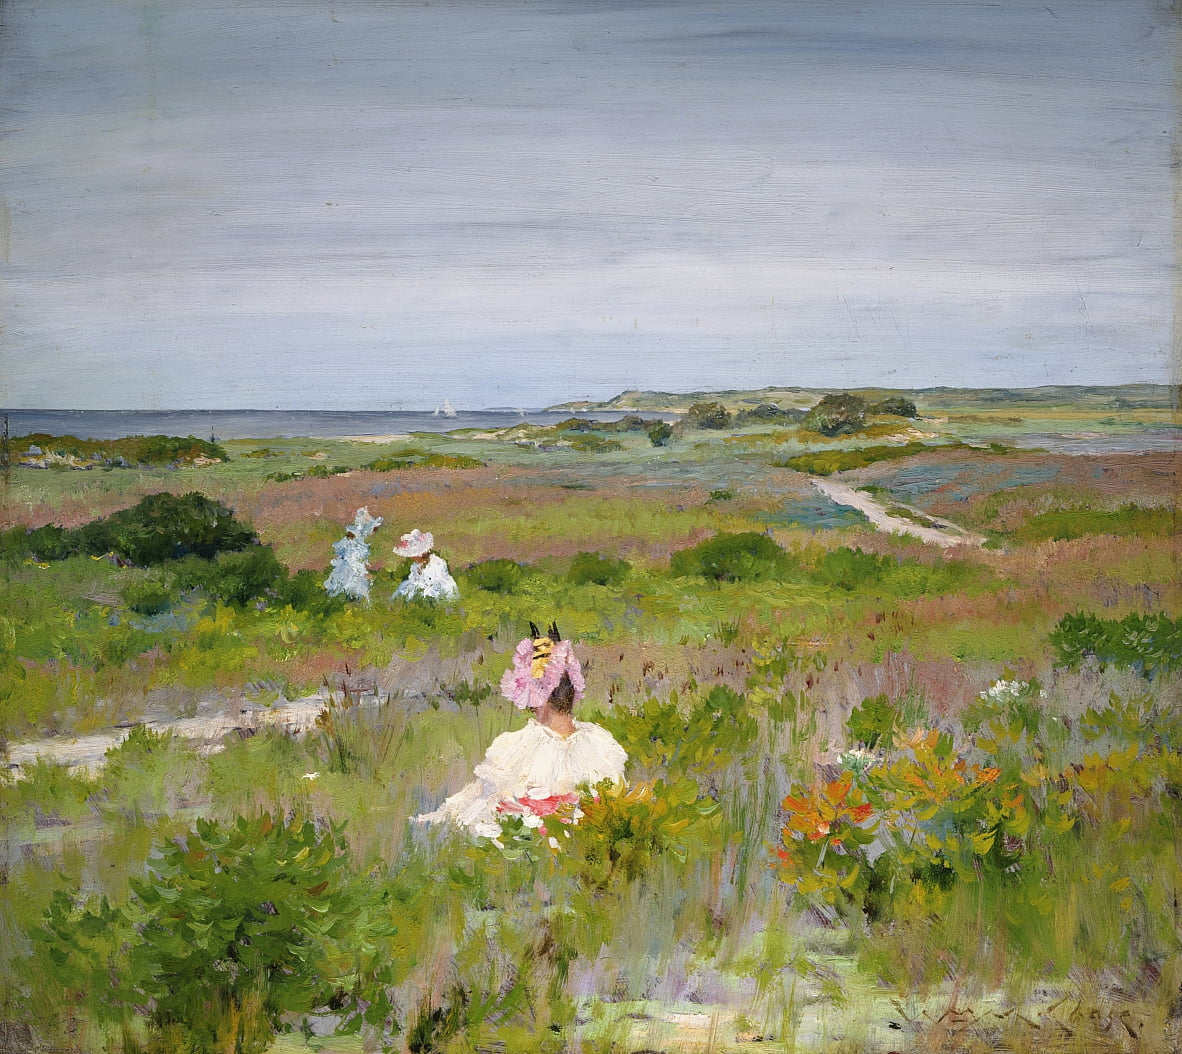 Landschafts Shinnecock, Long Island von William Merritt Chase